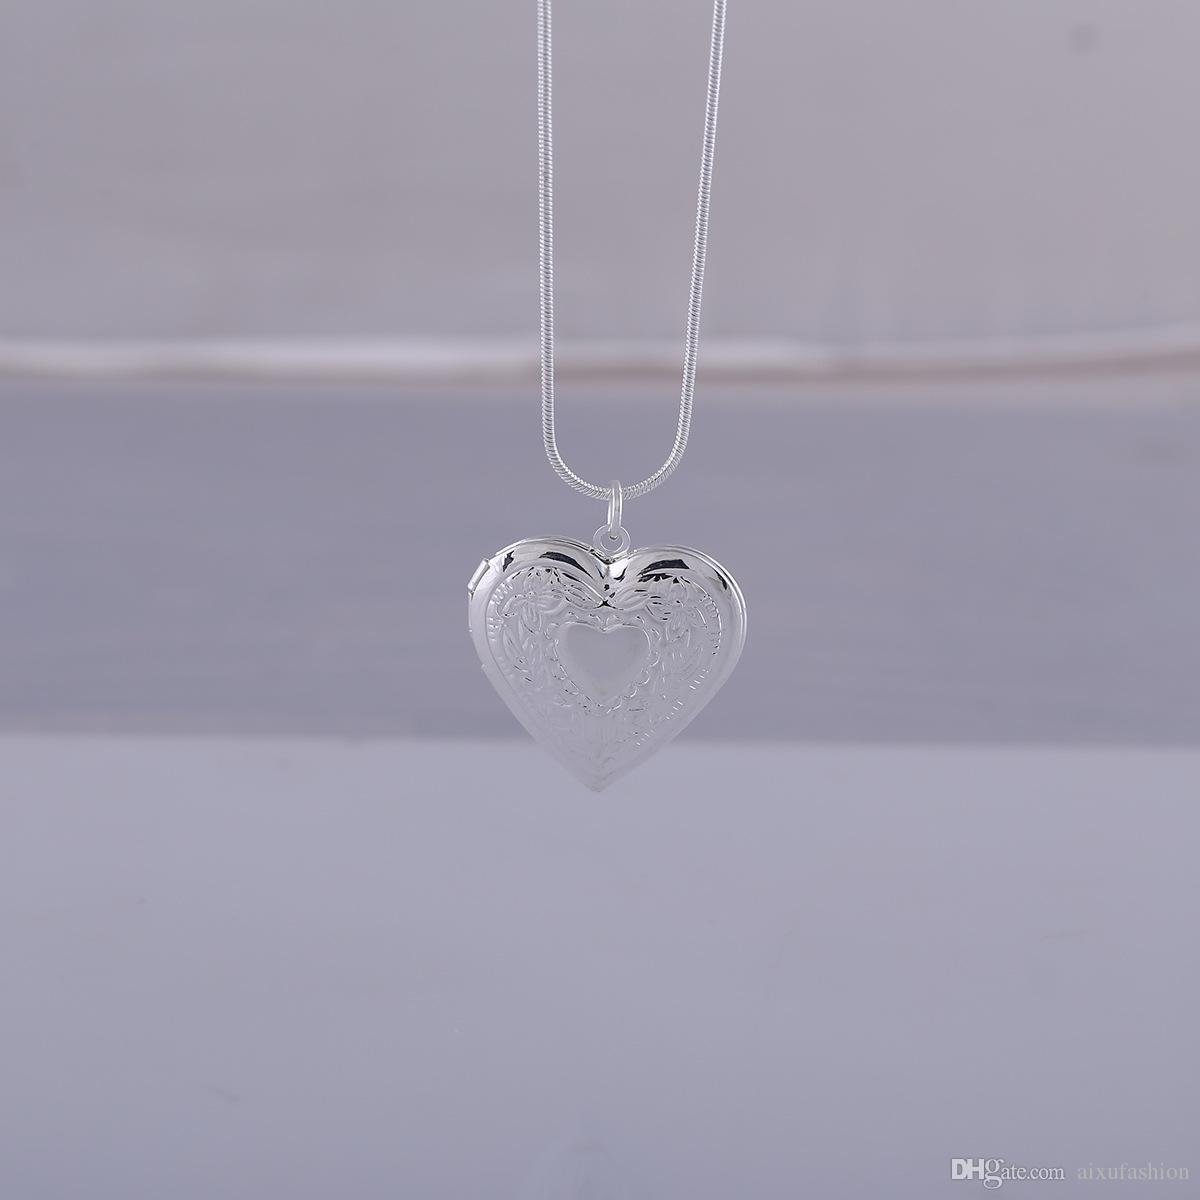 Silver Plated 925 Lockets Pendant Necklaces Heart Carved Charm Photo Frames Can Open Locket Necklace Valentine's Day Gift For Women Girl